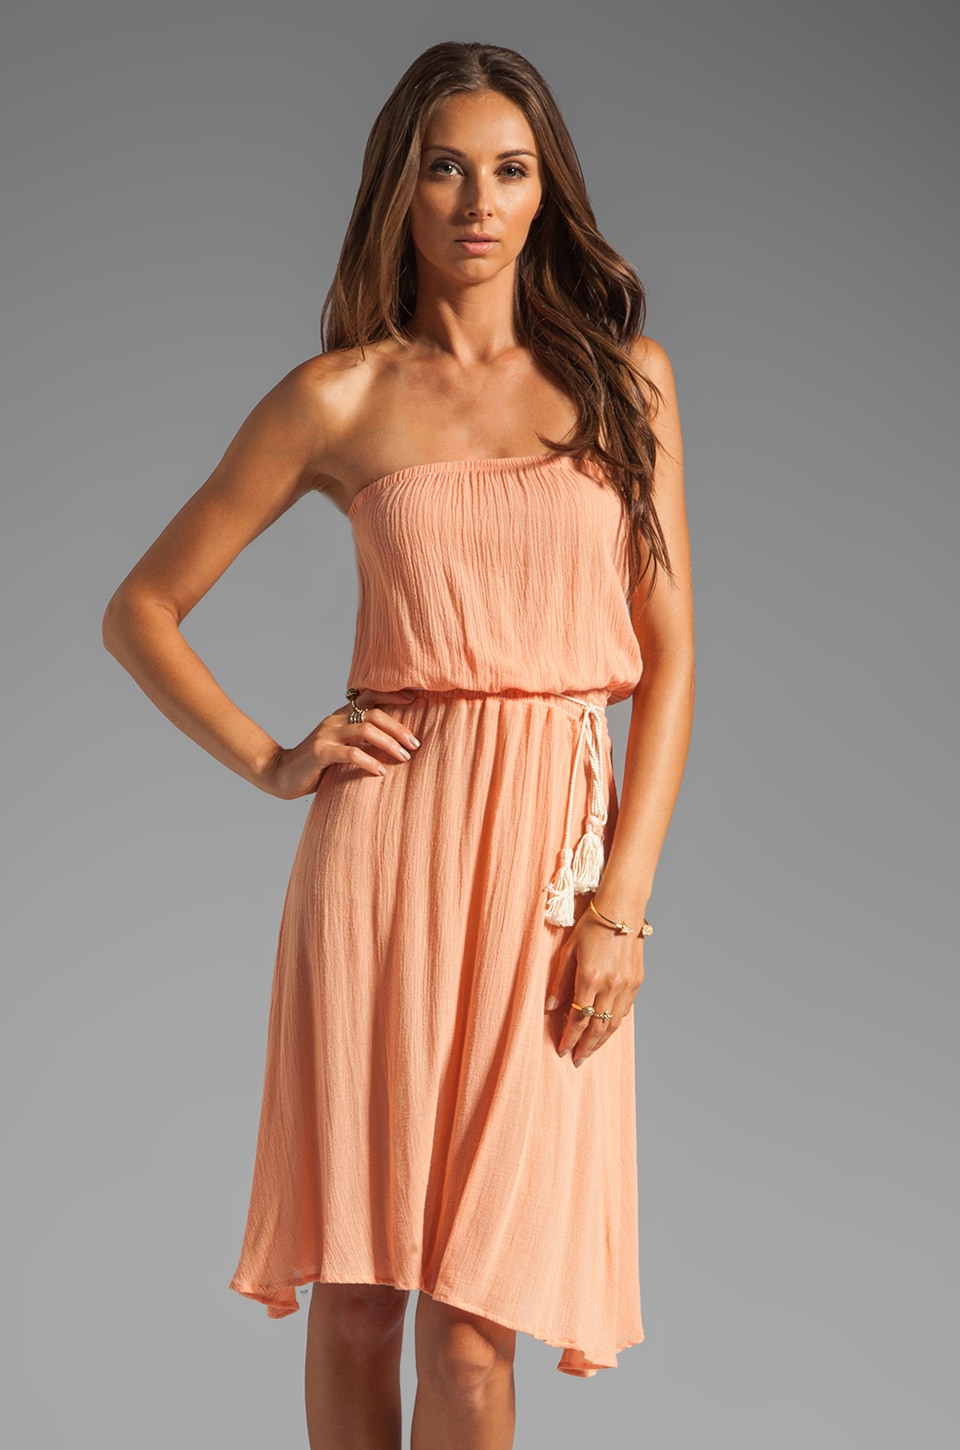 eberjey Summer of Love Ginger Cover Up in Apricot